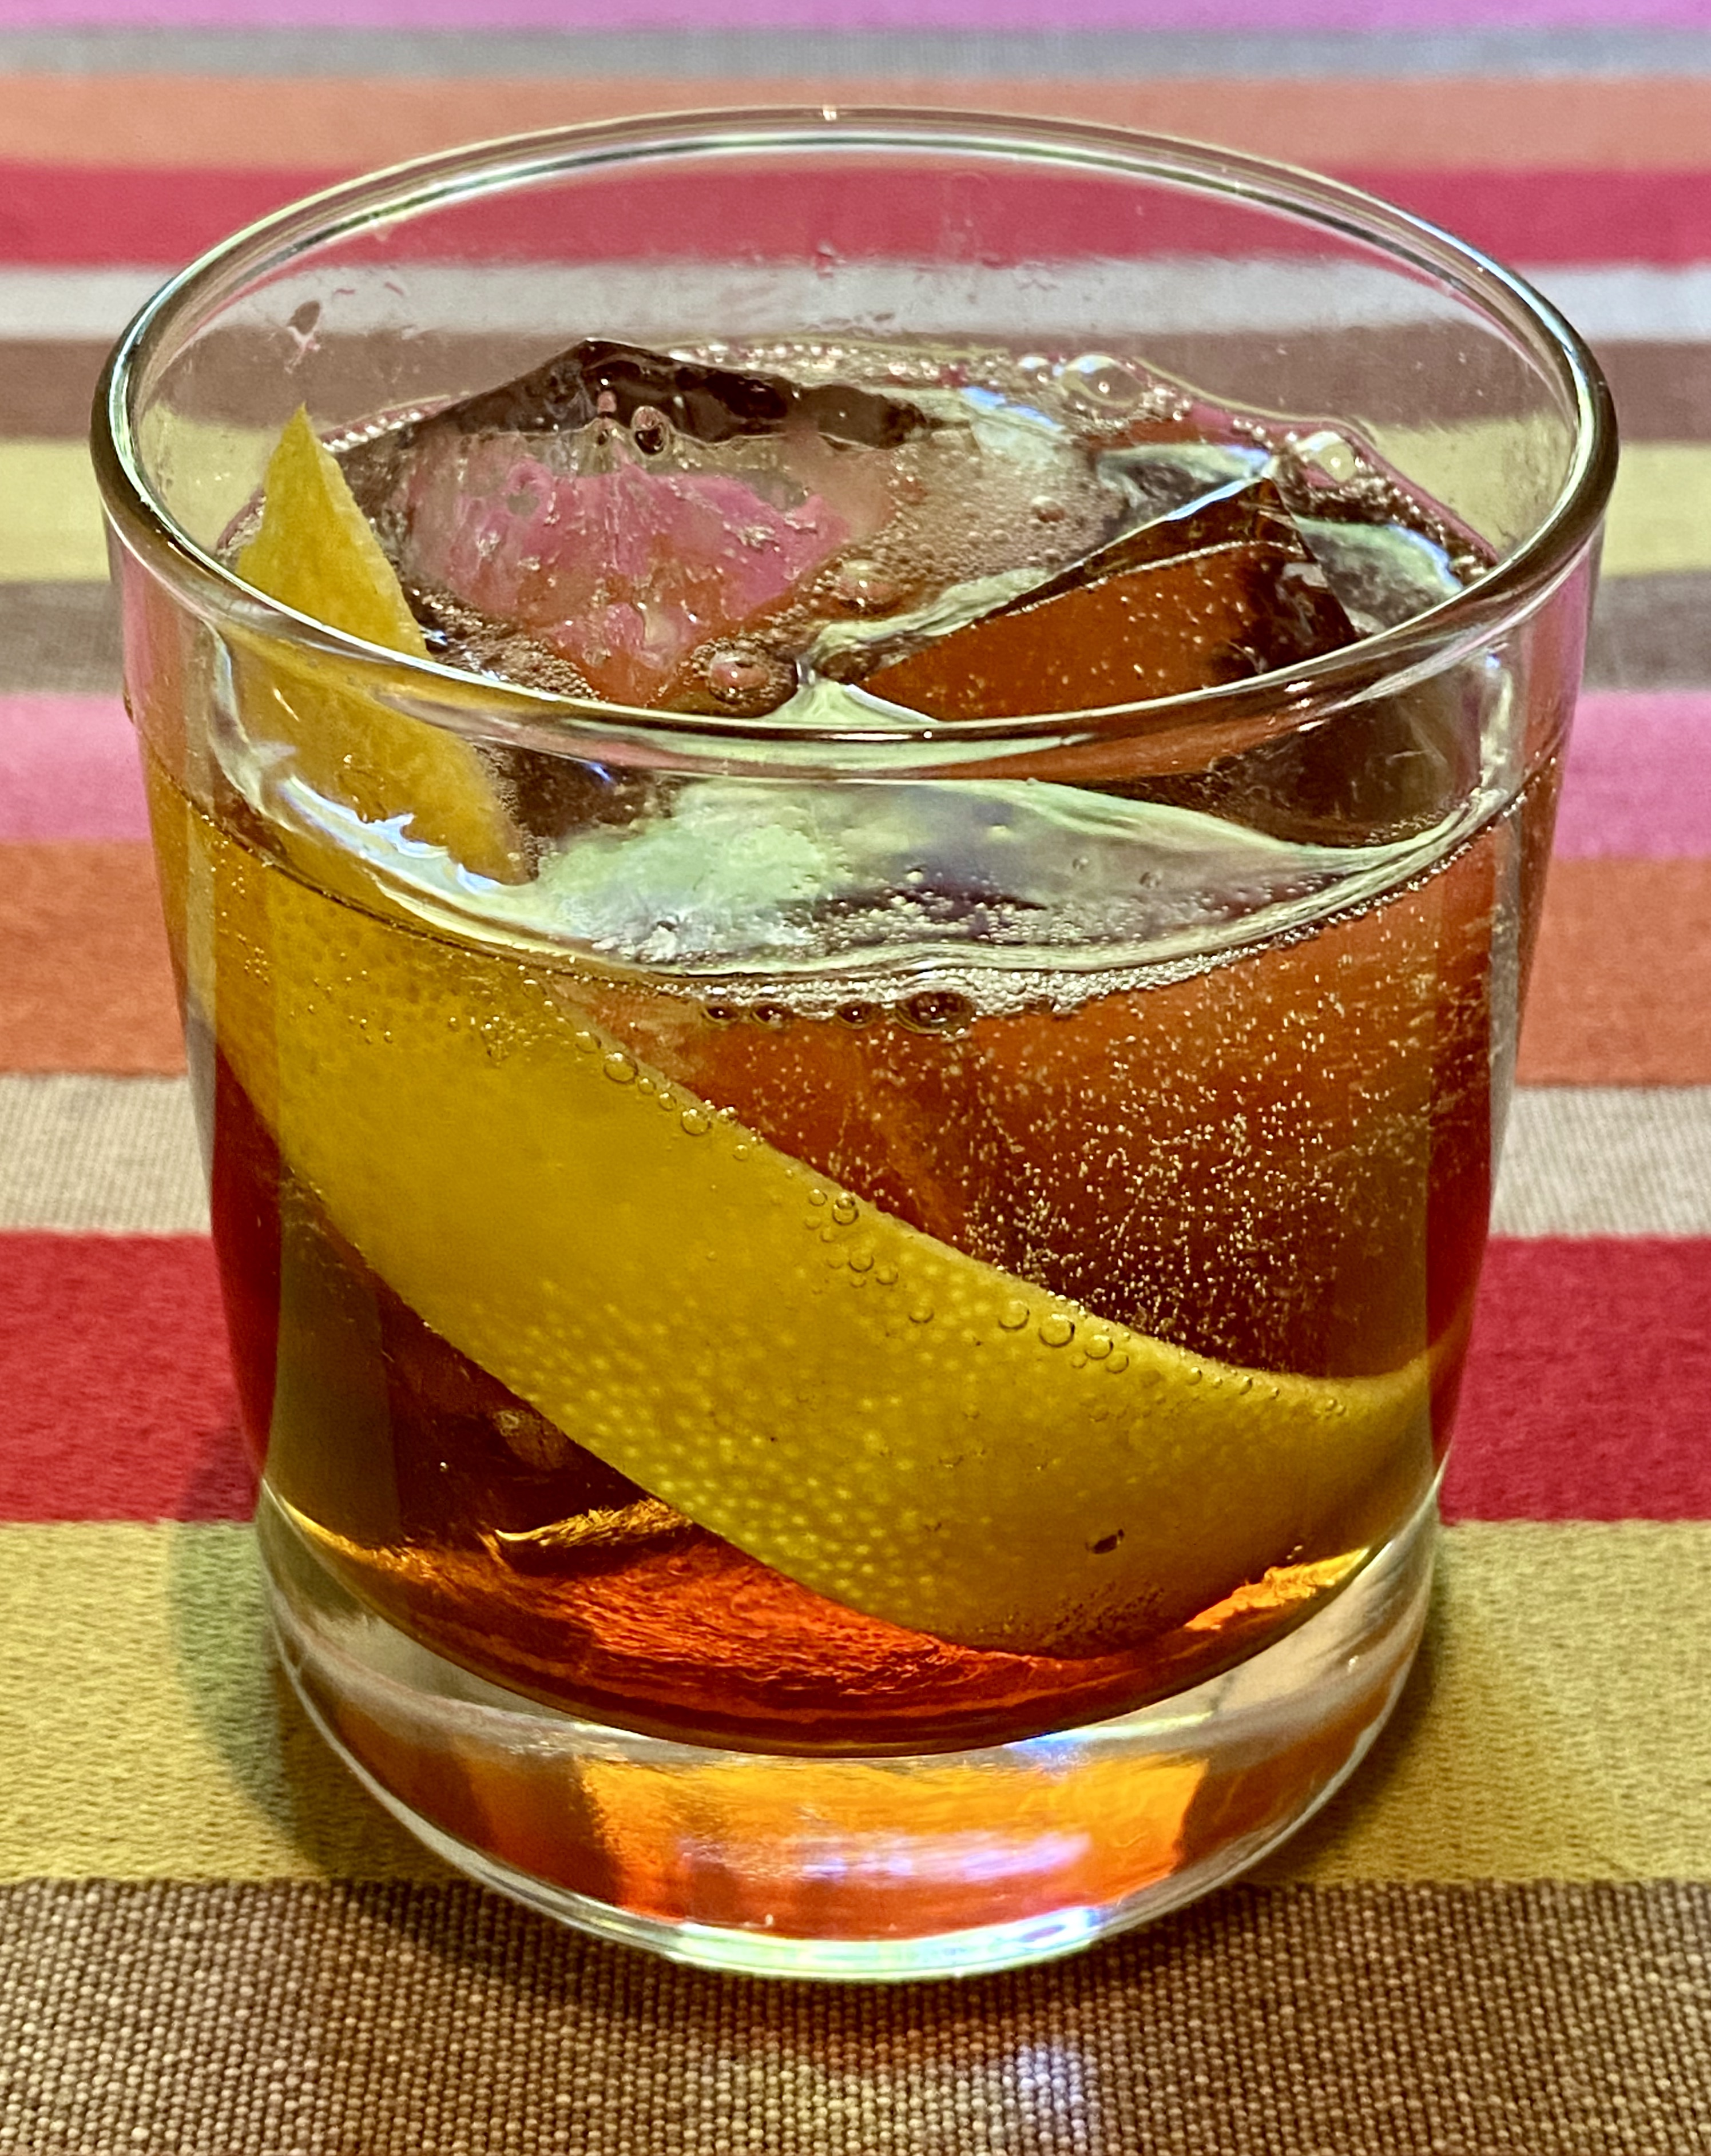 An example of the Mattei Rouge Spritz, the mixed drink (cocktail) featuring Mattei Cap Corse Rouge Quinquina, and soda water or tonic water; photo by Martin Doudoroff